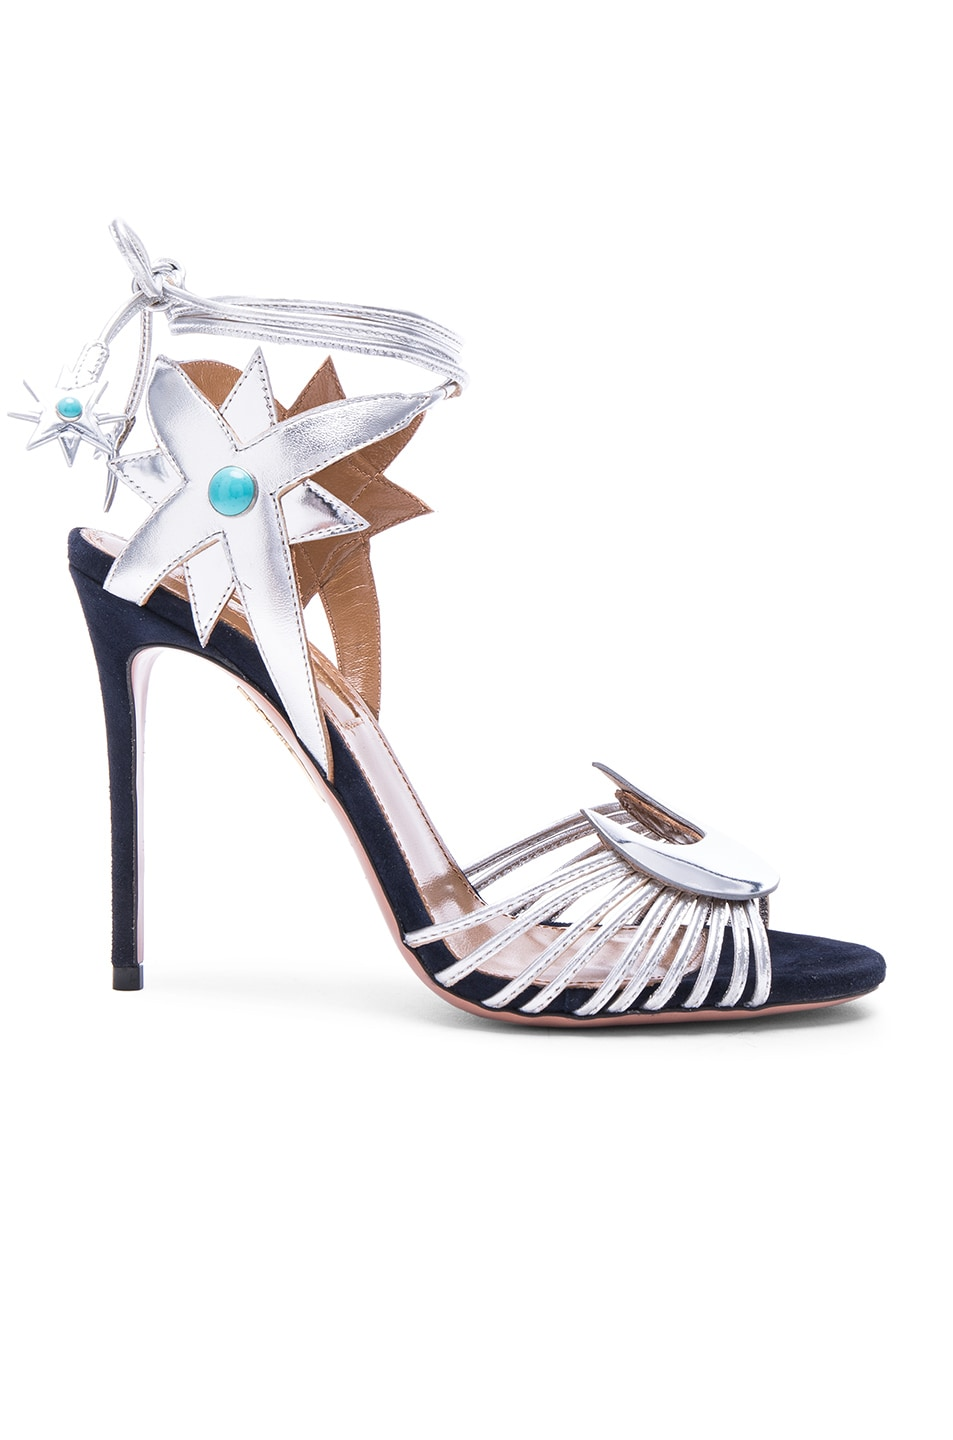 Inexpensive for sale Poppy Delevingne x Aquazzura Leather Wrap Around Sandals buy cheap find great prices sale online ynTuLz